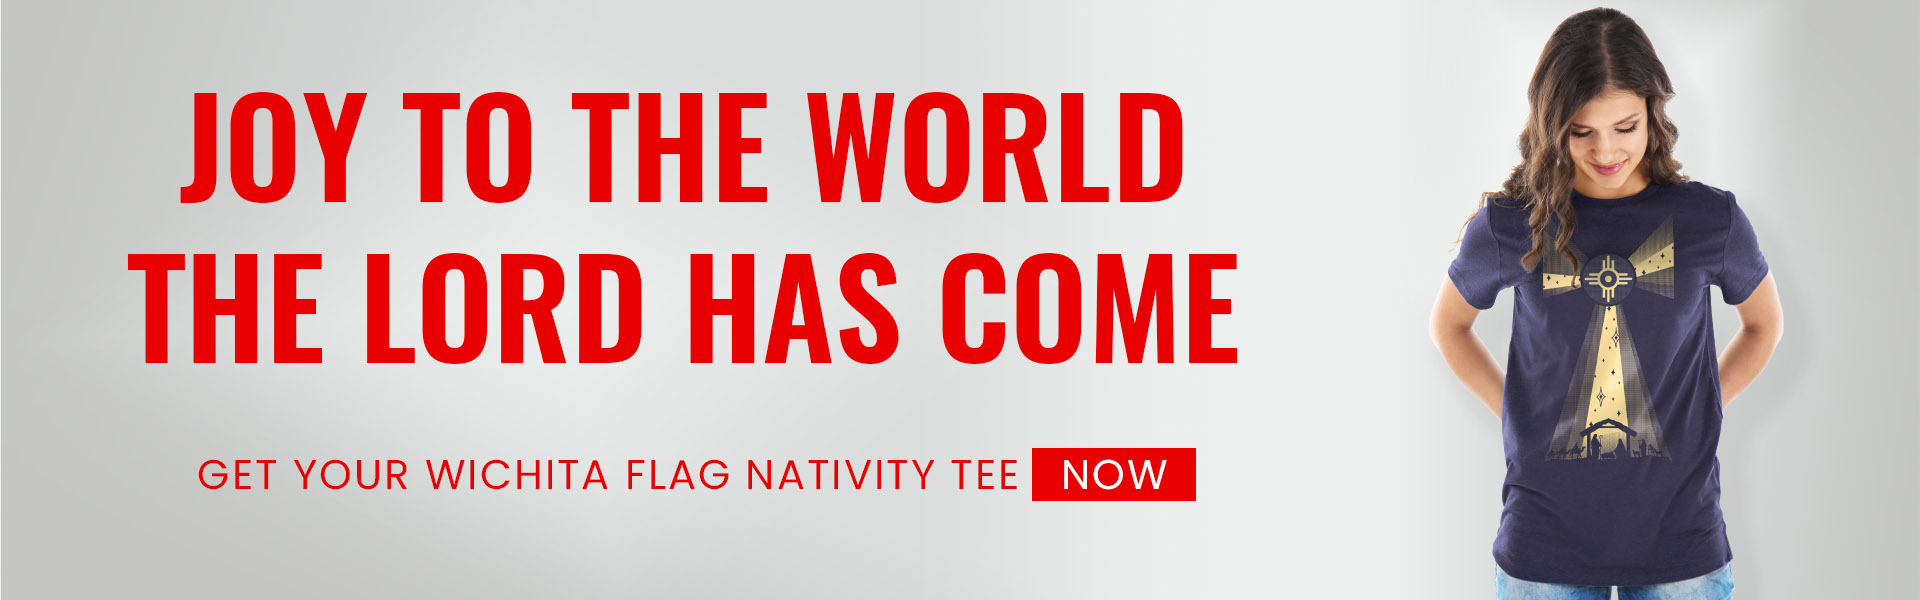 Joy to the world the Lord has come! Get your Wichita Flag Nativity Christmas T-shirt now.